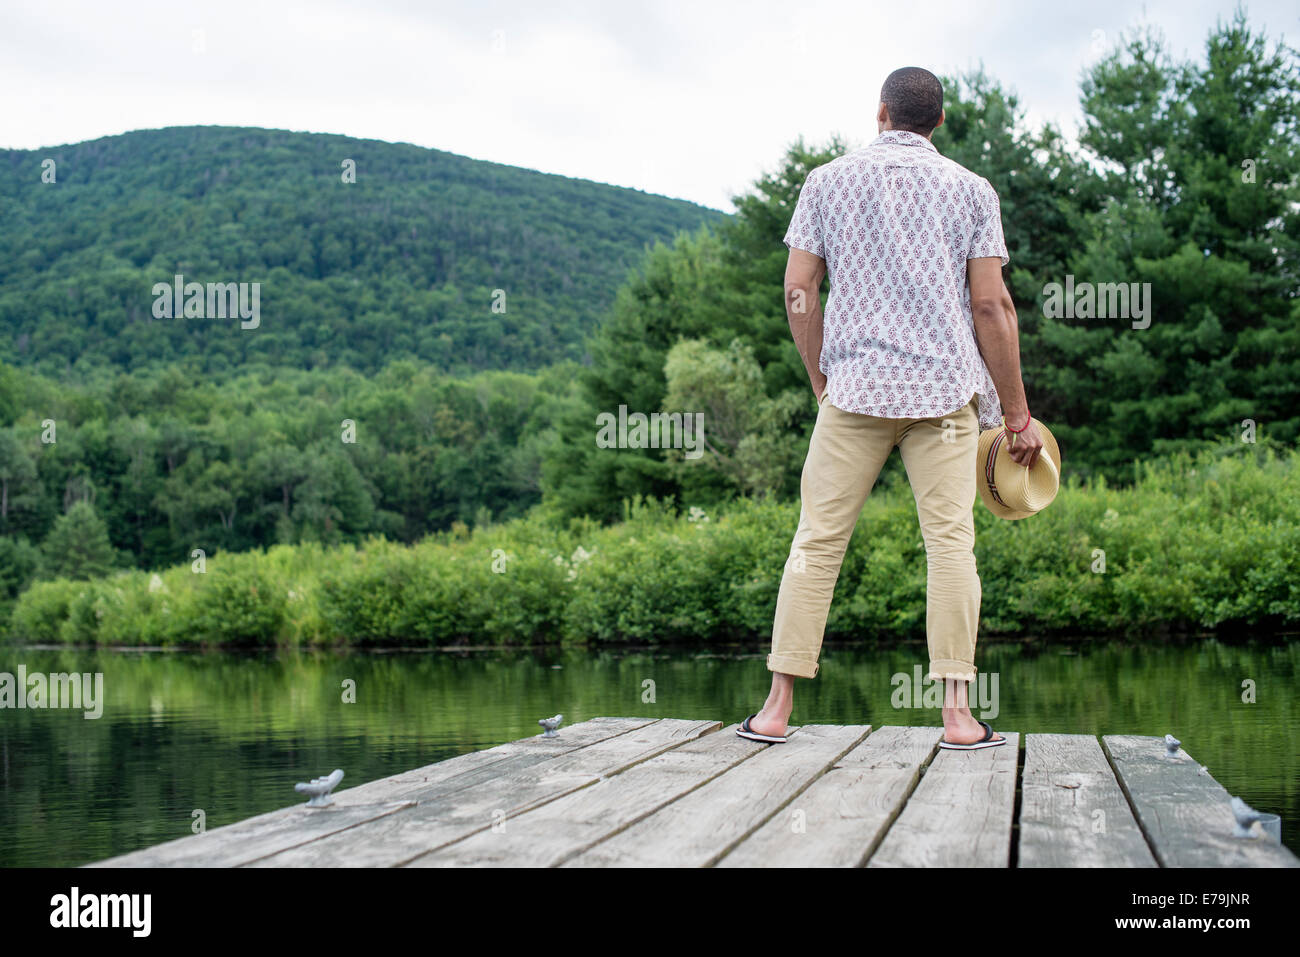 A man standing on a wooden pier overlooking a calm lake. - Stock Image